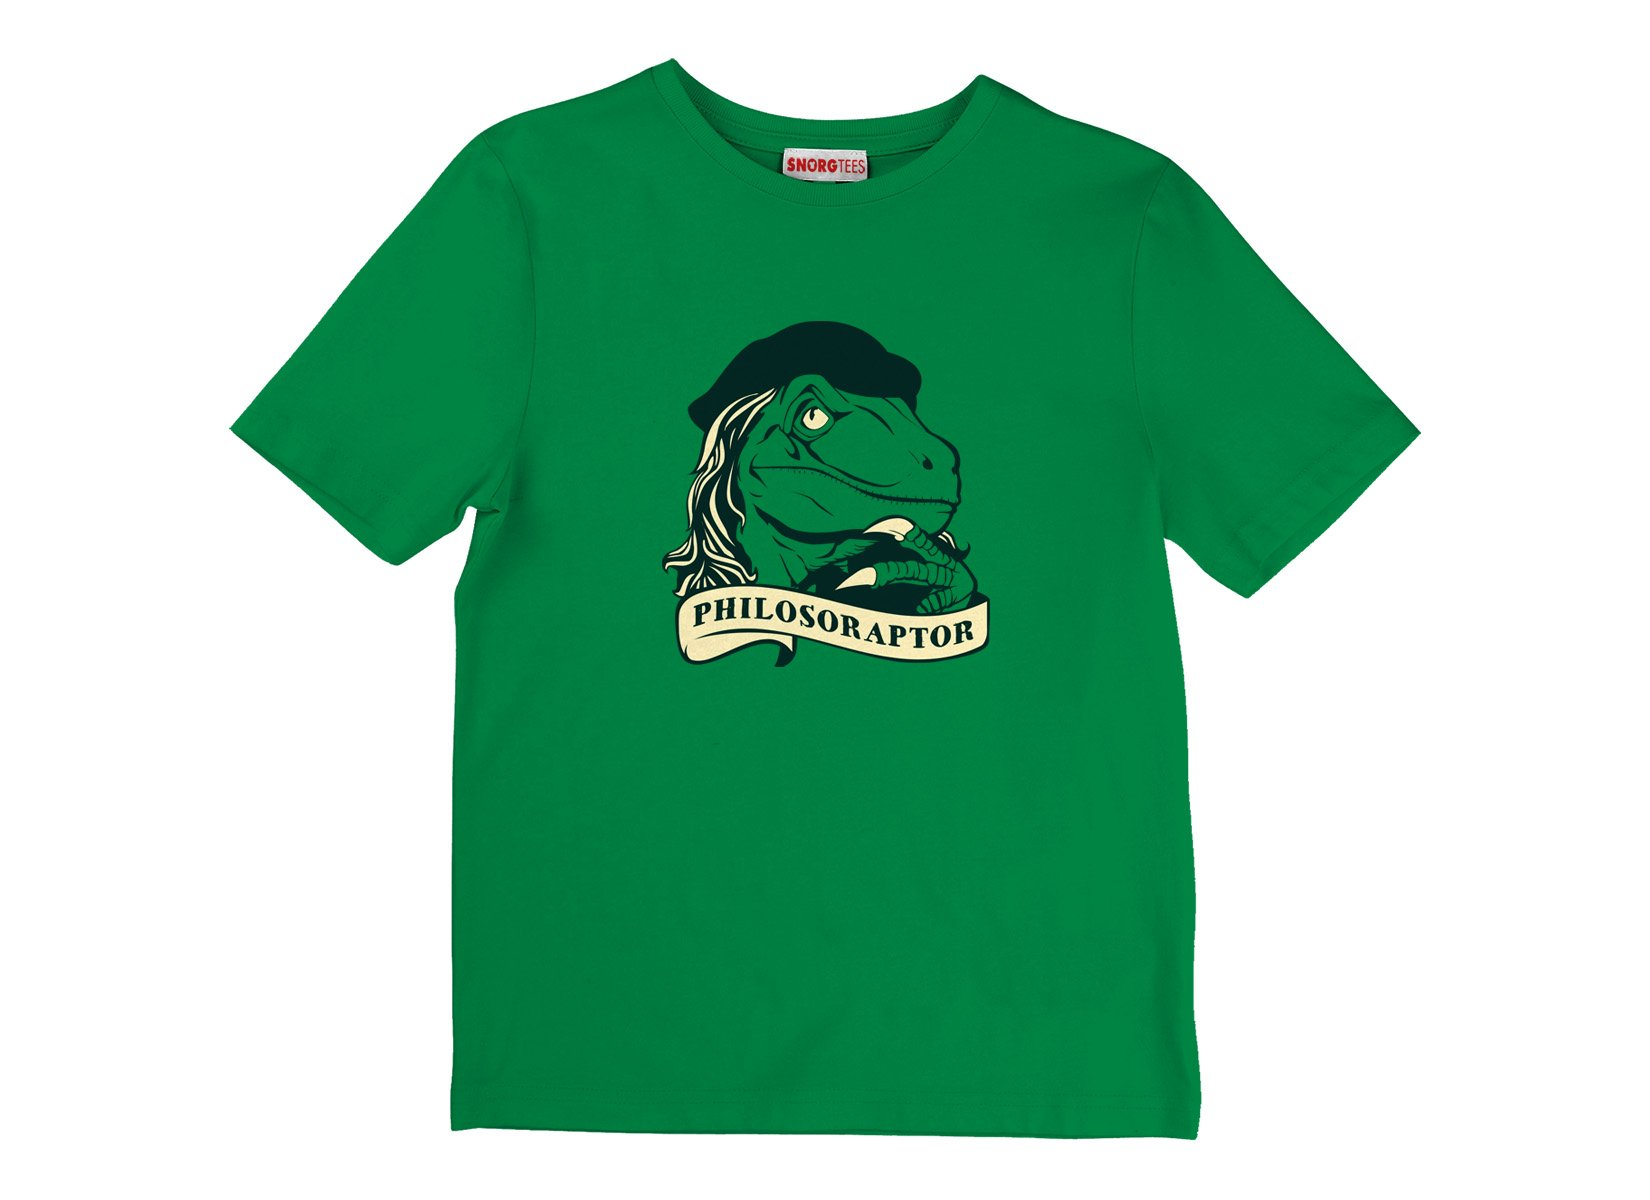 Philosoraptor on Kids T-Shirt